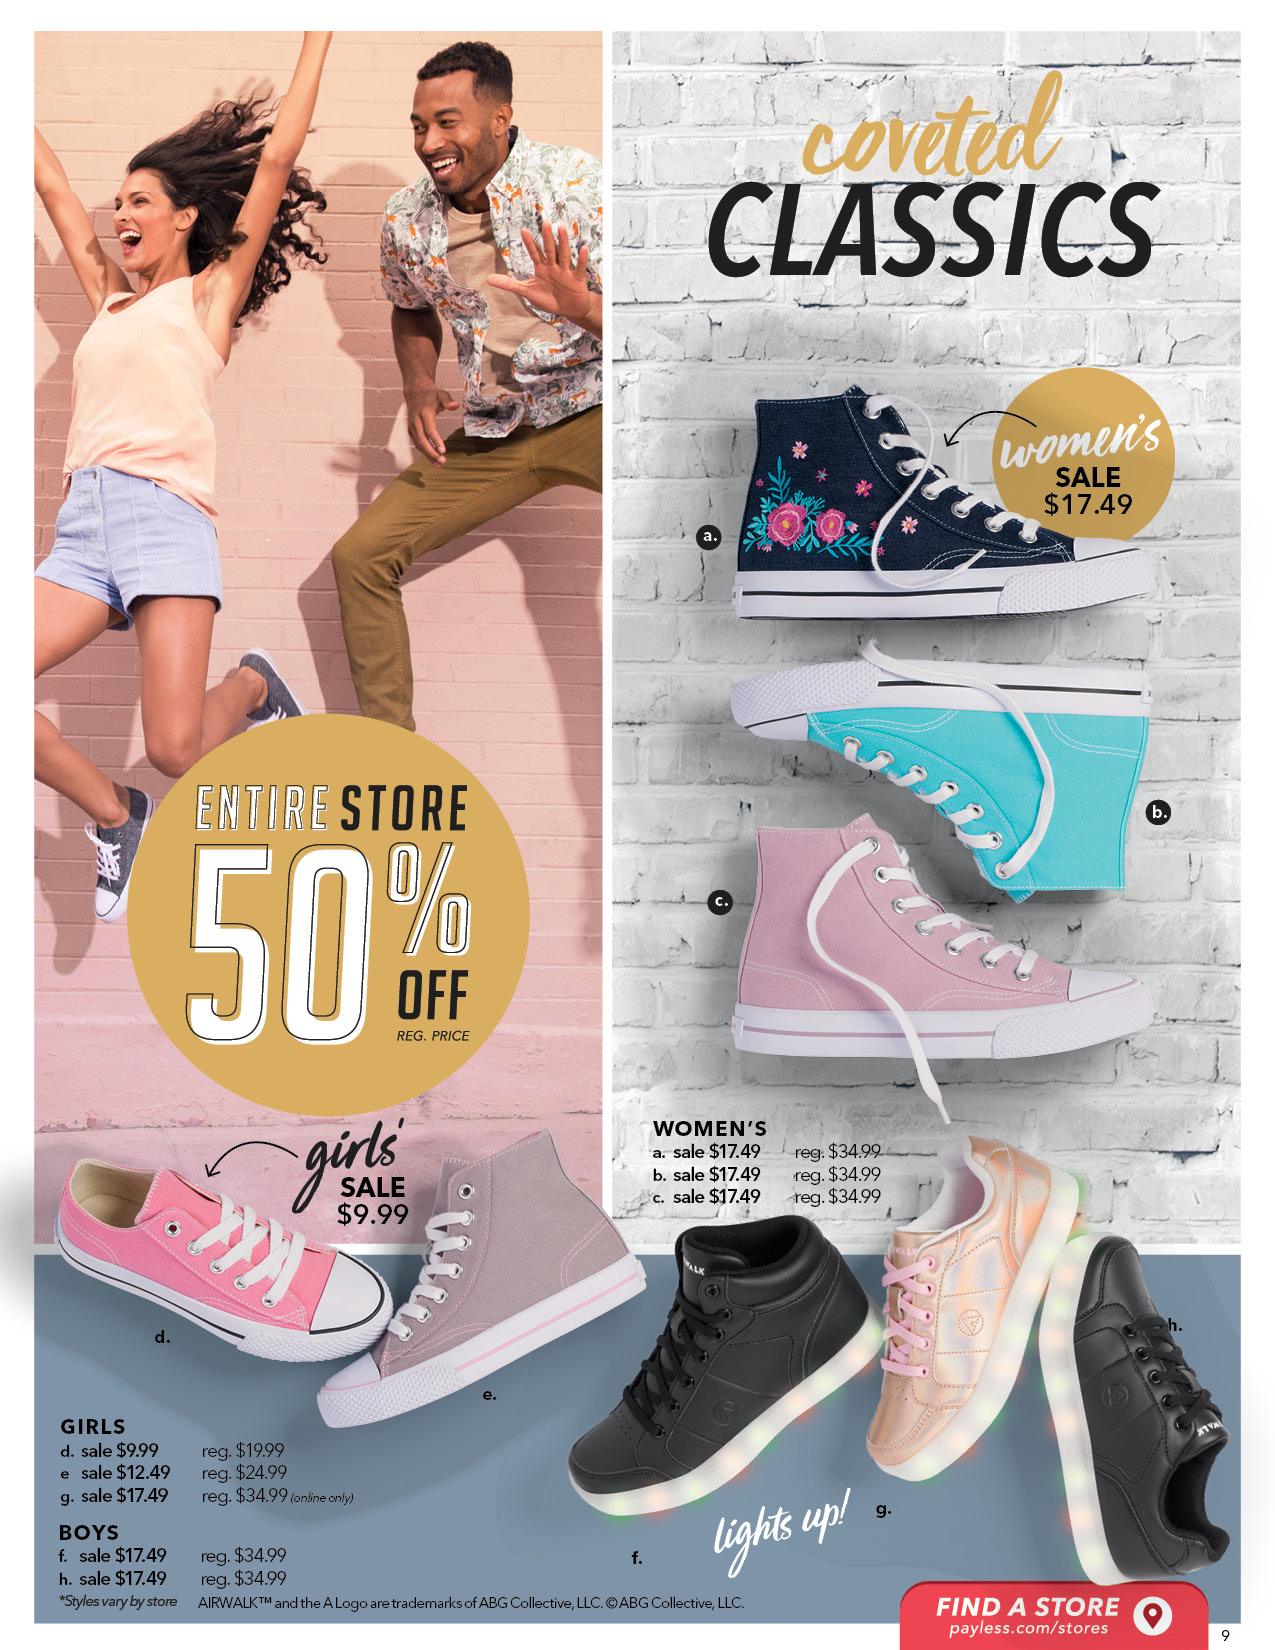 Payless Black Friday 2017 Ads and Deals